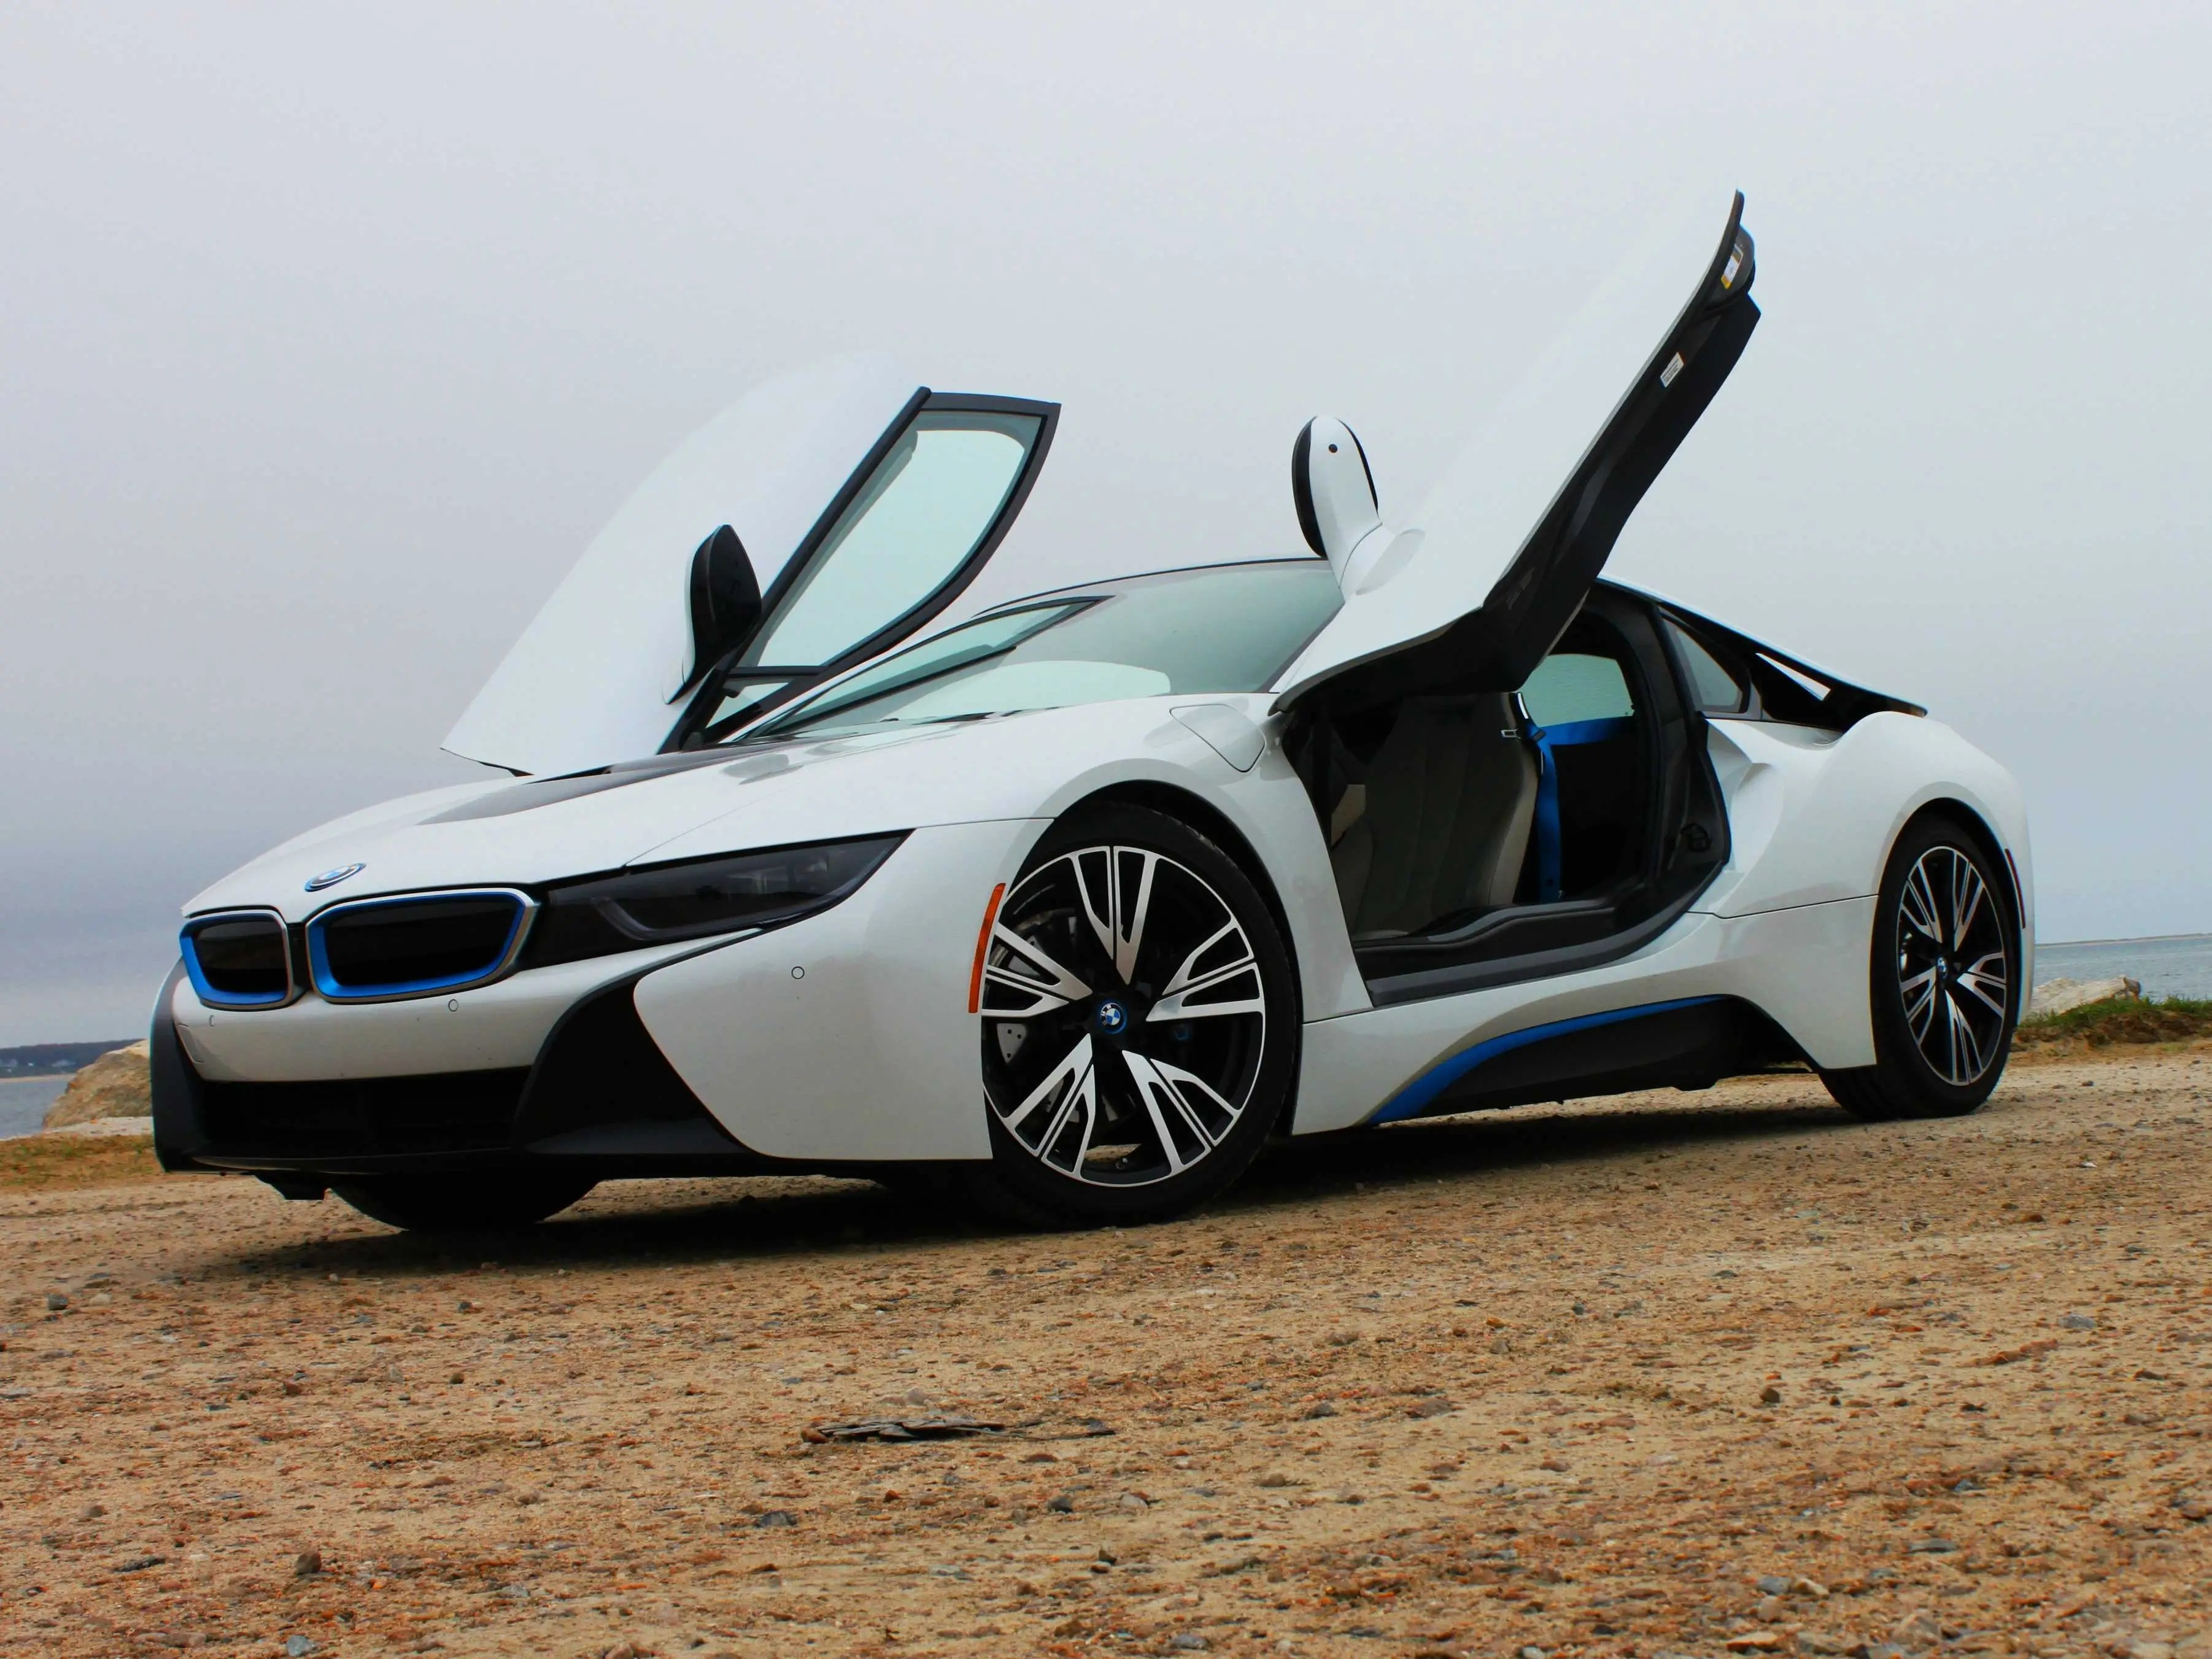 8 Million Dollar Car Wallpapers Bmw I8 Sports Car Of The Future Business Insider